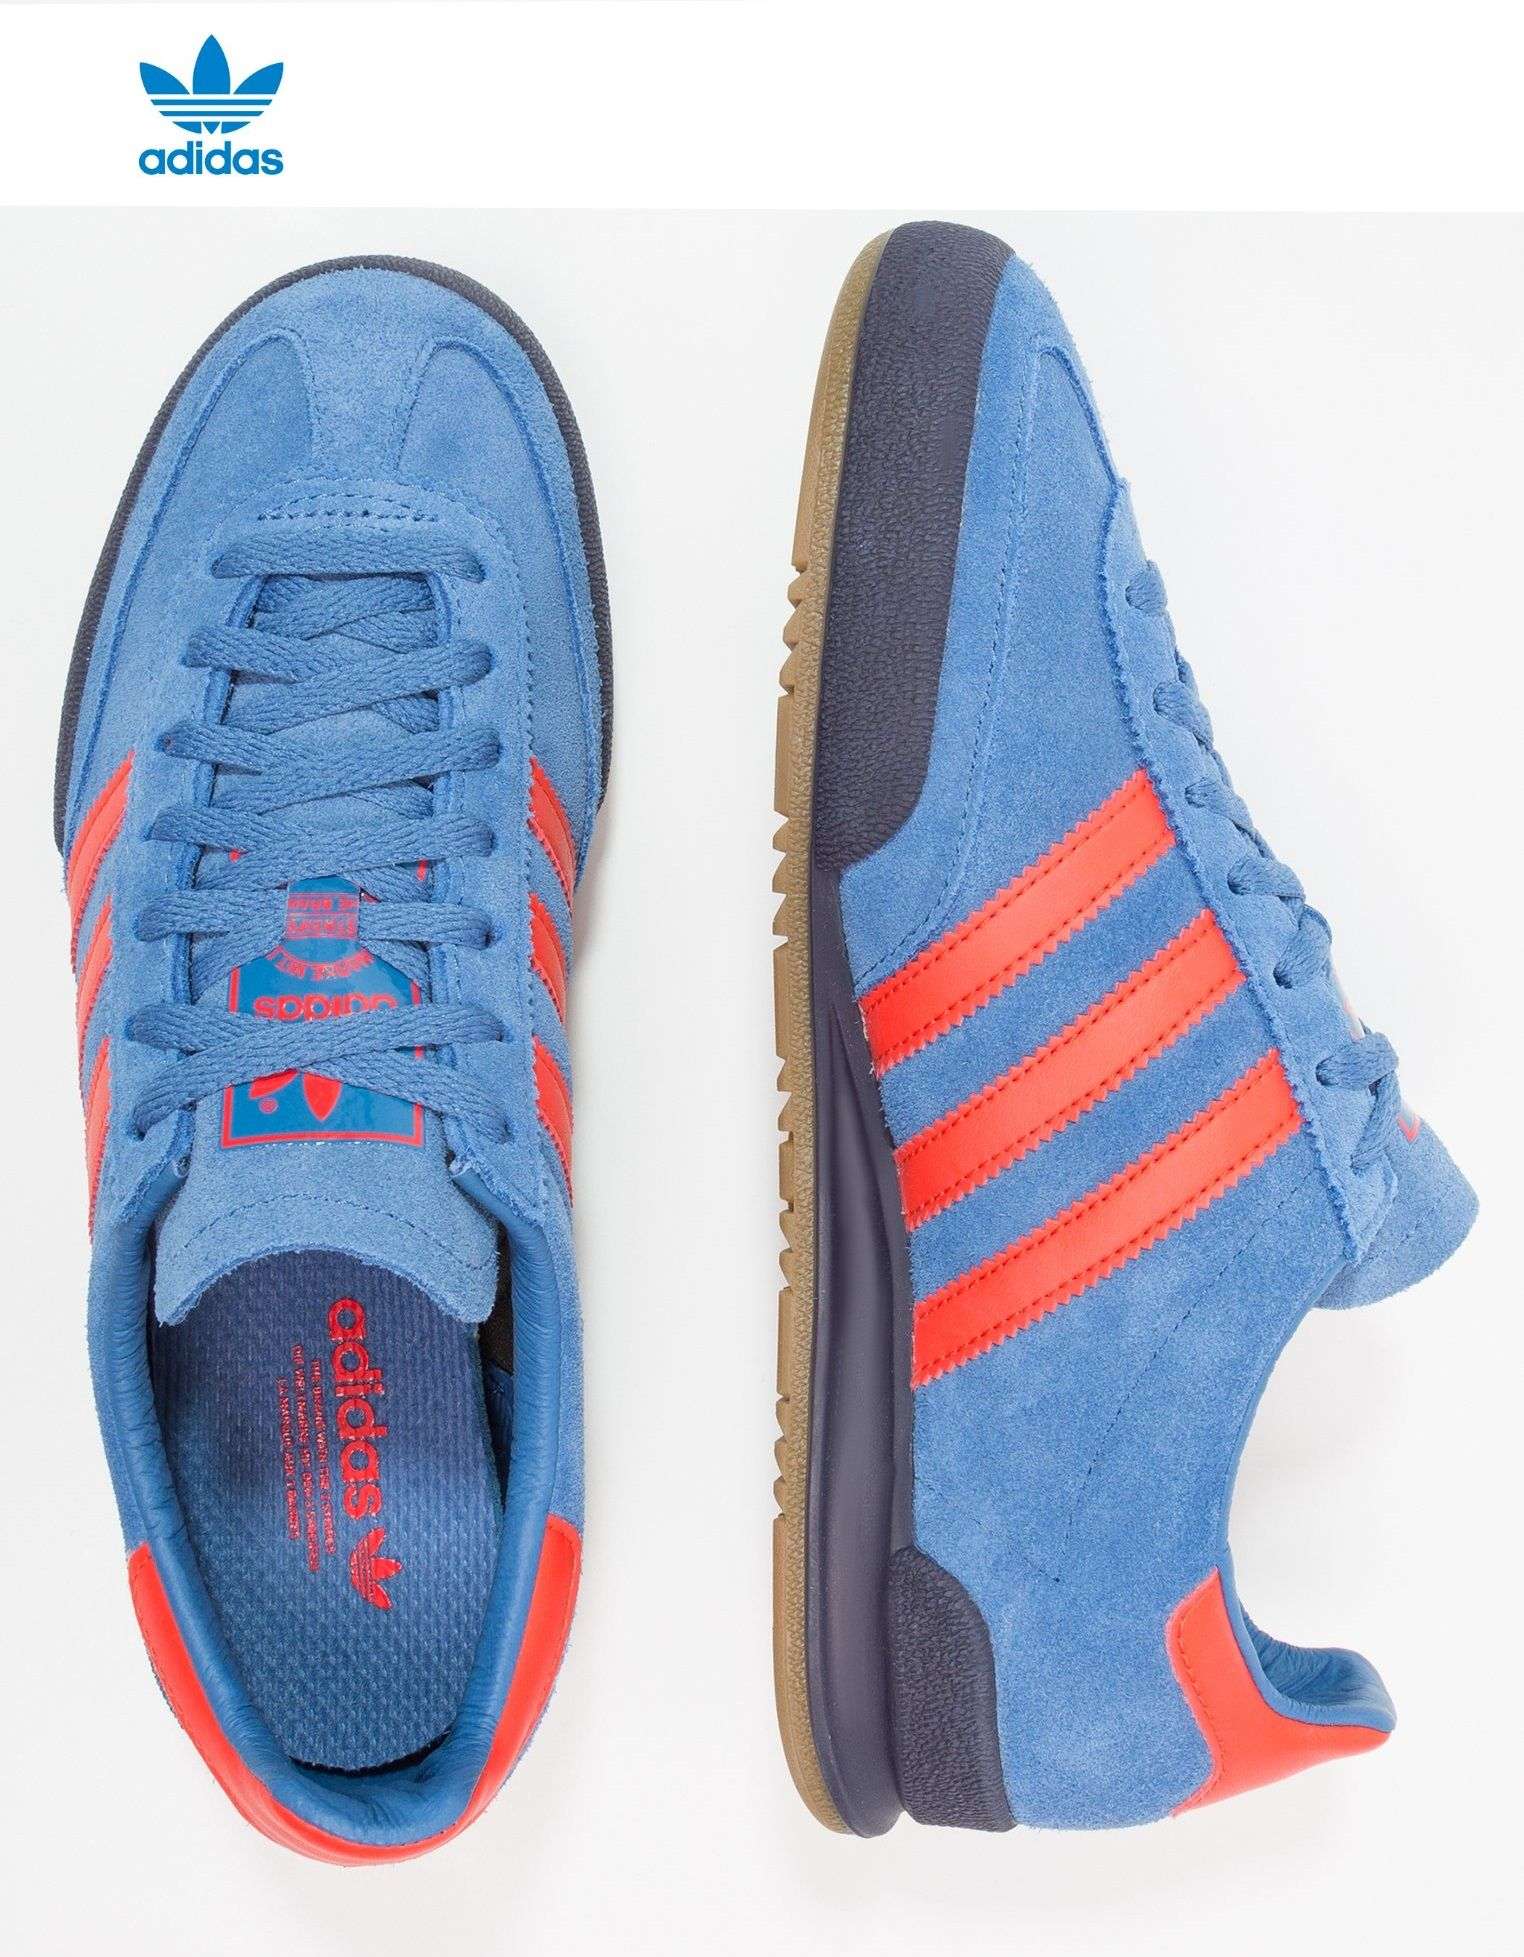 Nice release Jeans in Manchester colourway   Sneakers and